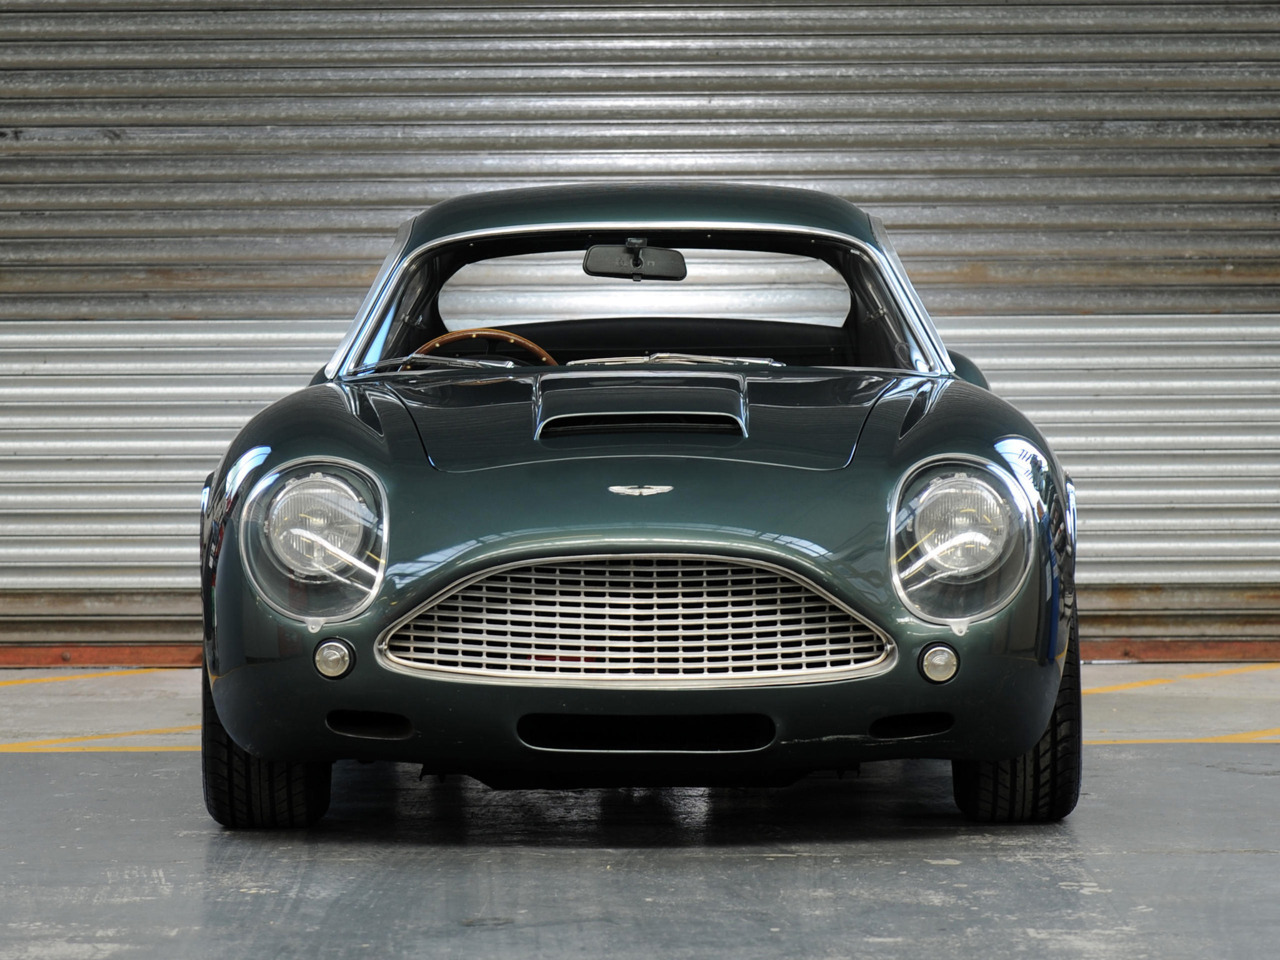 1991(?) Aston Martin DB4 GTZ Sanction II